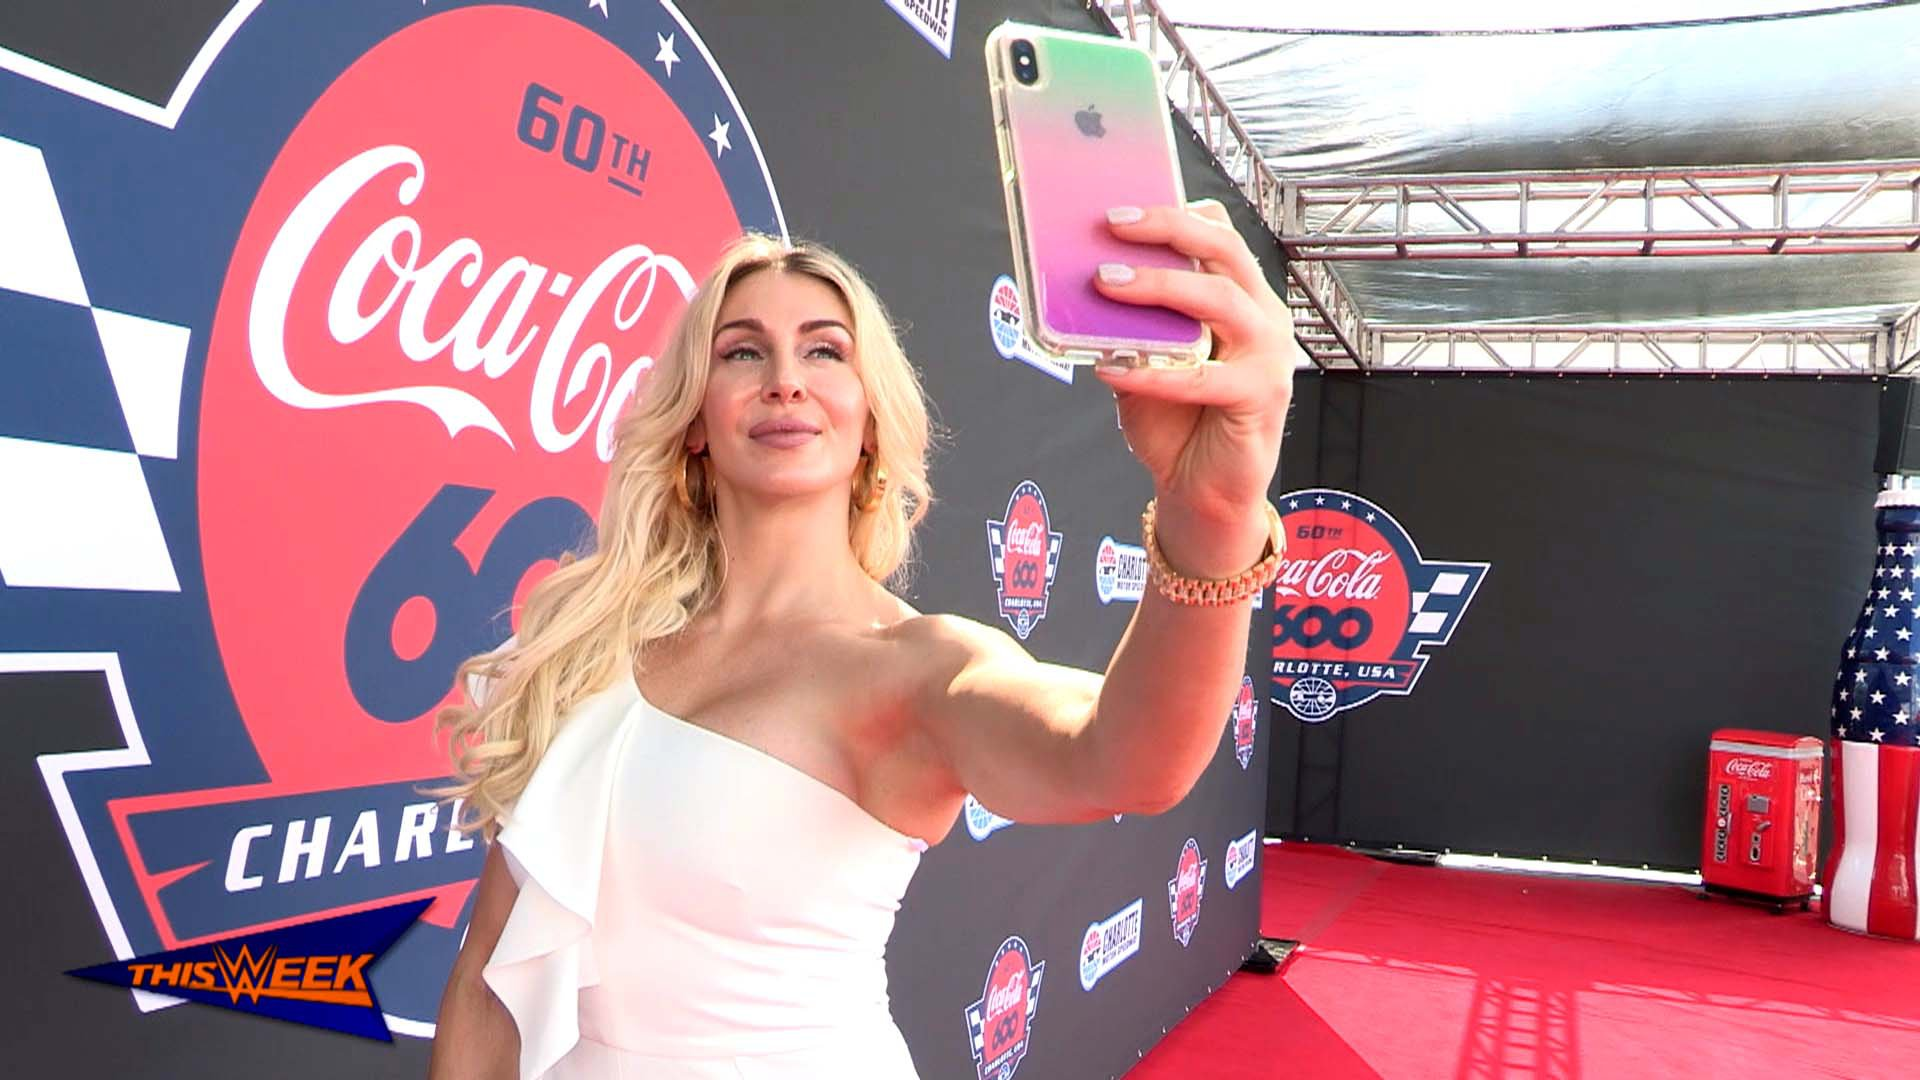 Charlotte Flair conduit la pace car au Coca-Cola 600